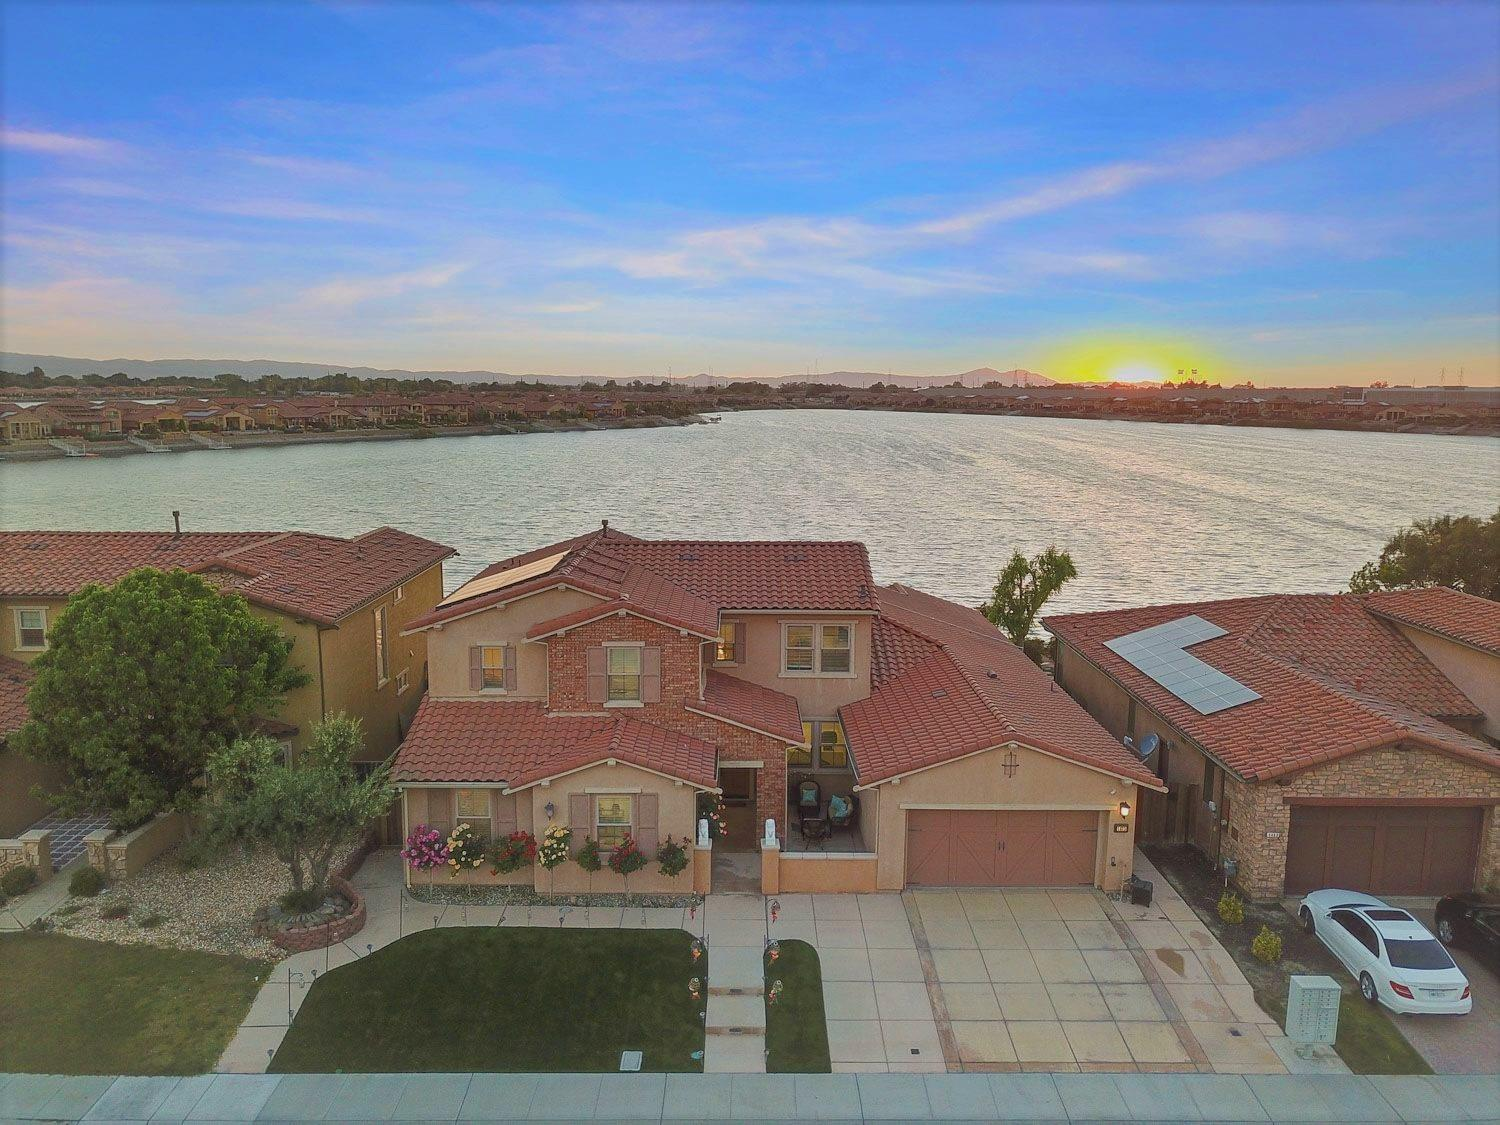 Photo of 1475 Como Drive, Manteca, CA 95337